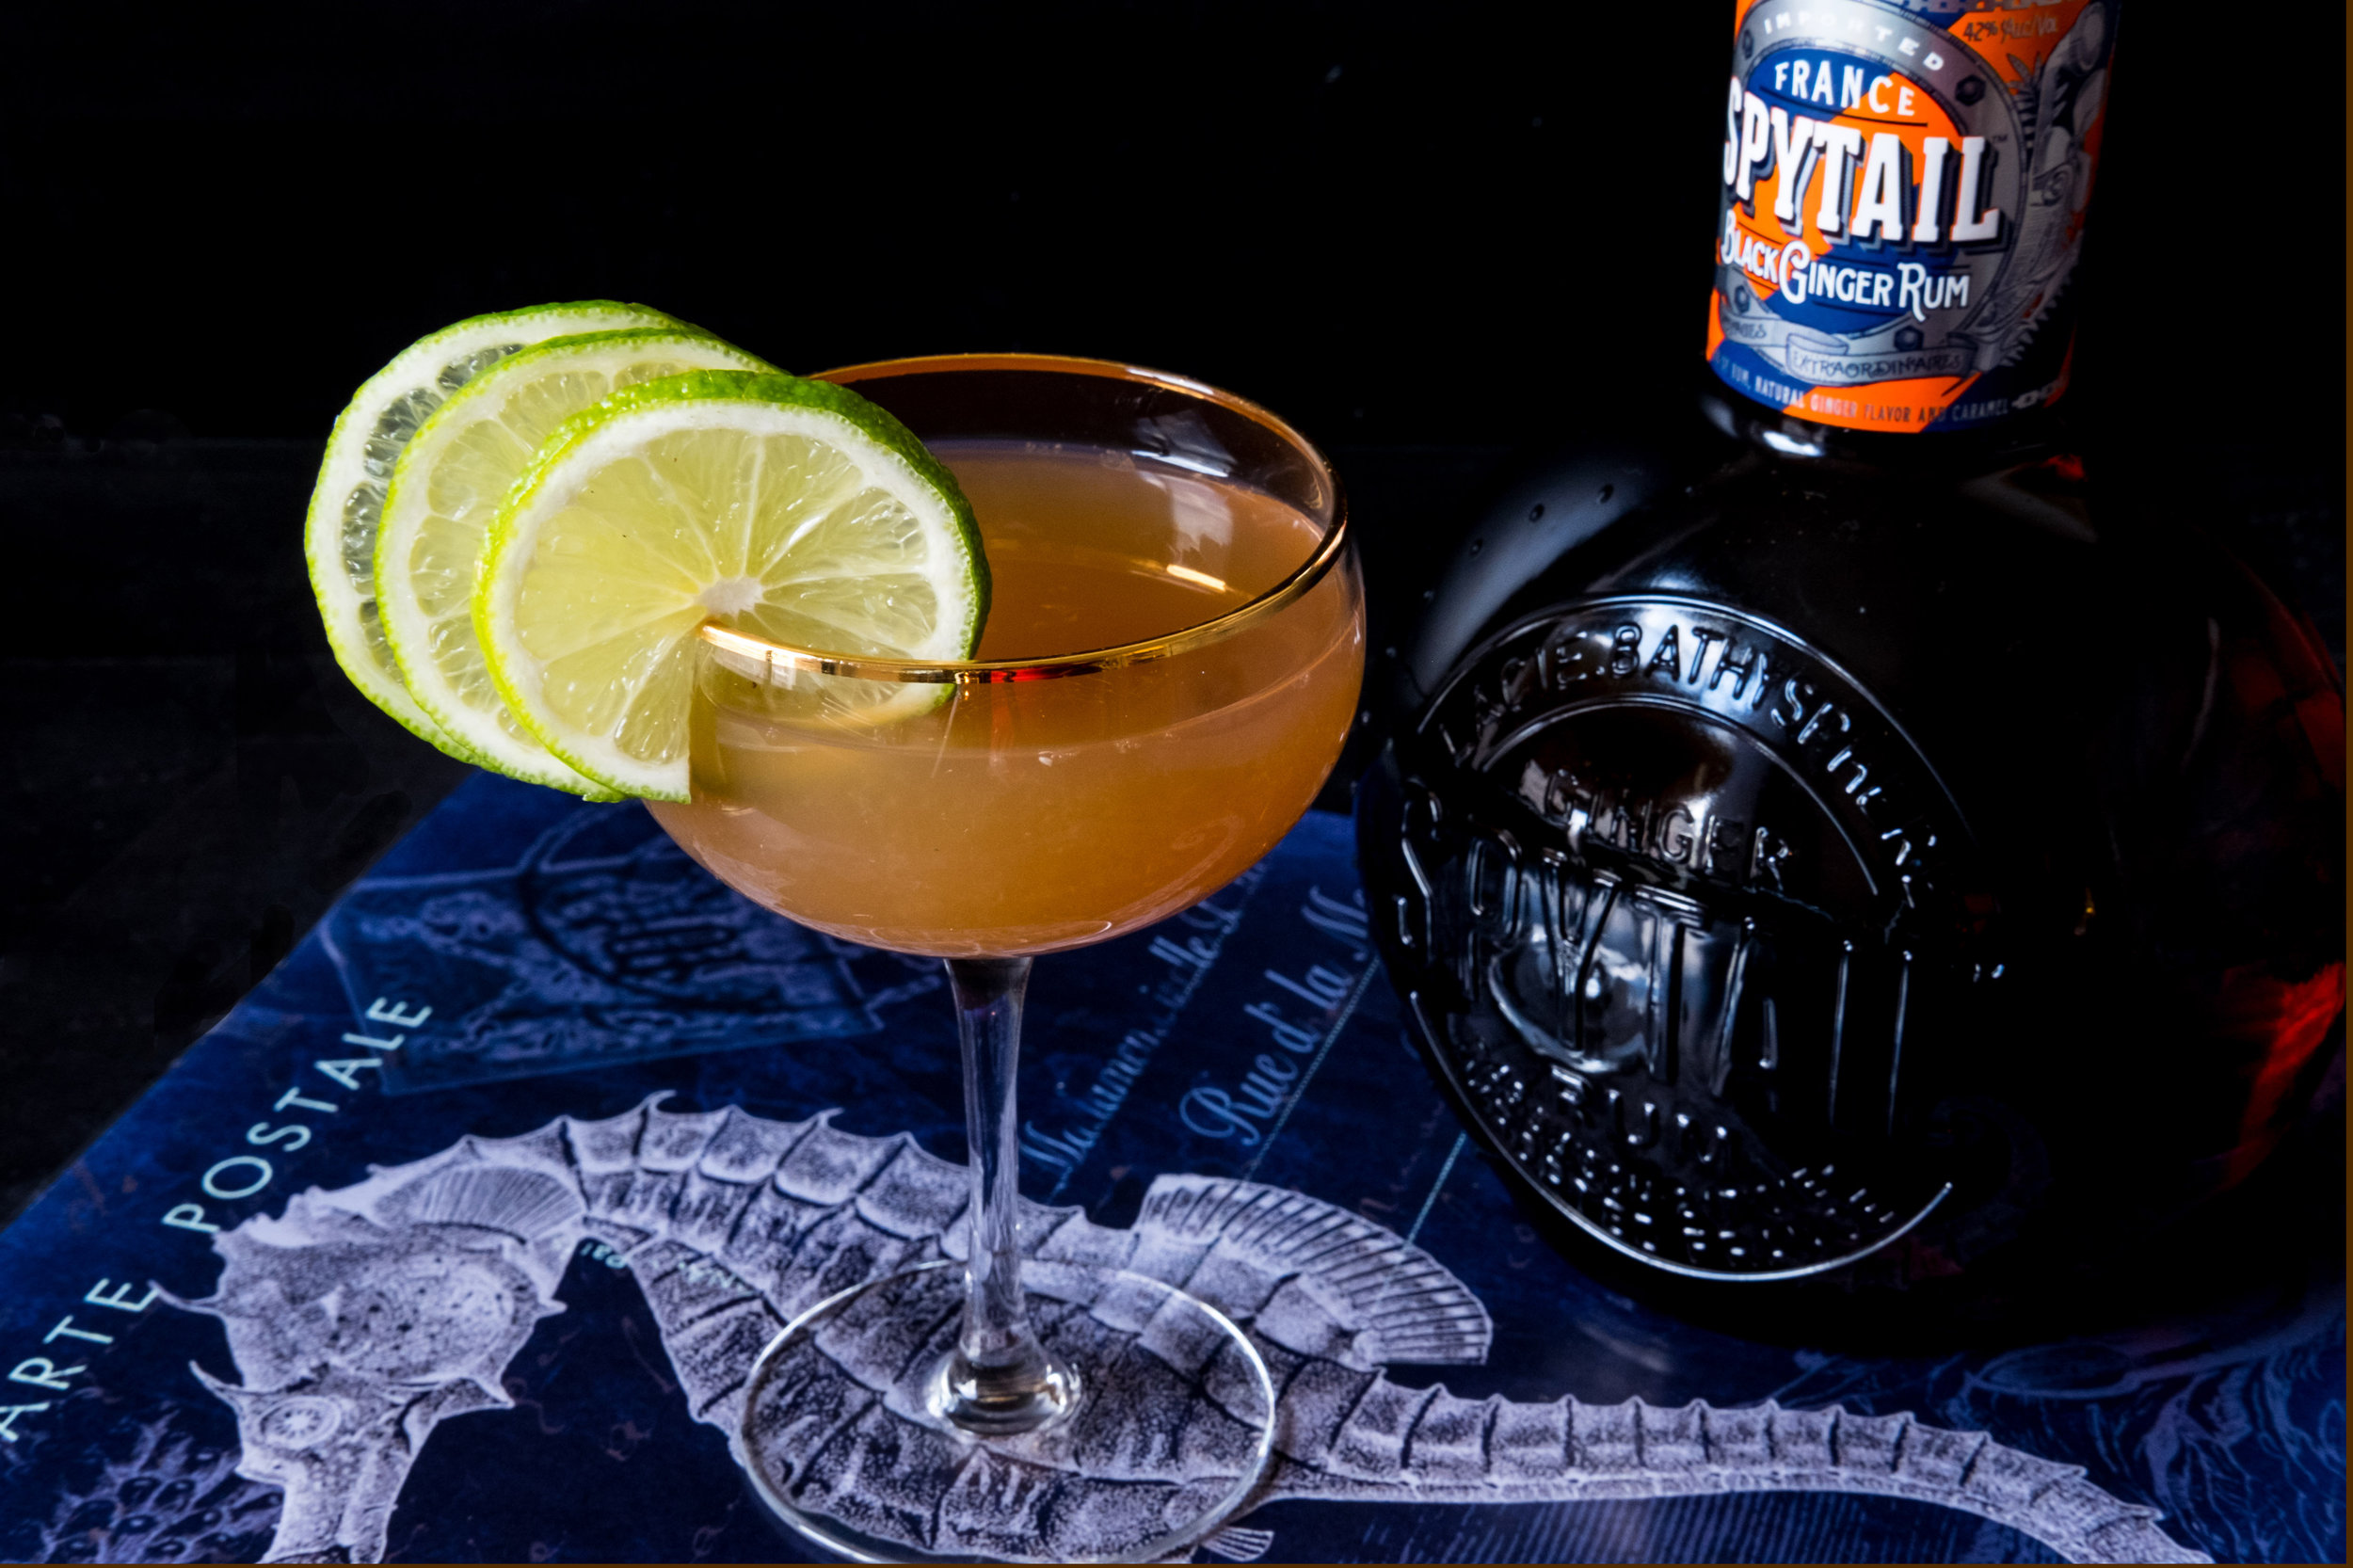 SPYTAIL RUM - This spring I had the pleasure of working with a rum like no other. Based on a 19th-century recipe,SpytailRumis made with fresh ginger root and spices in Cognac, France.